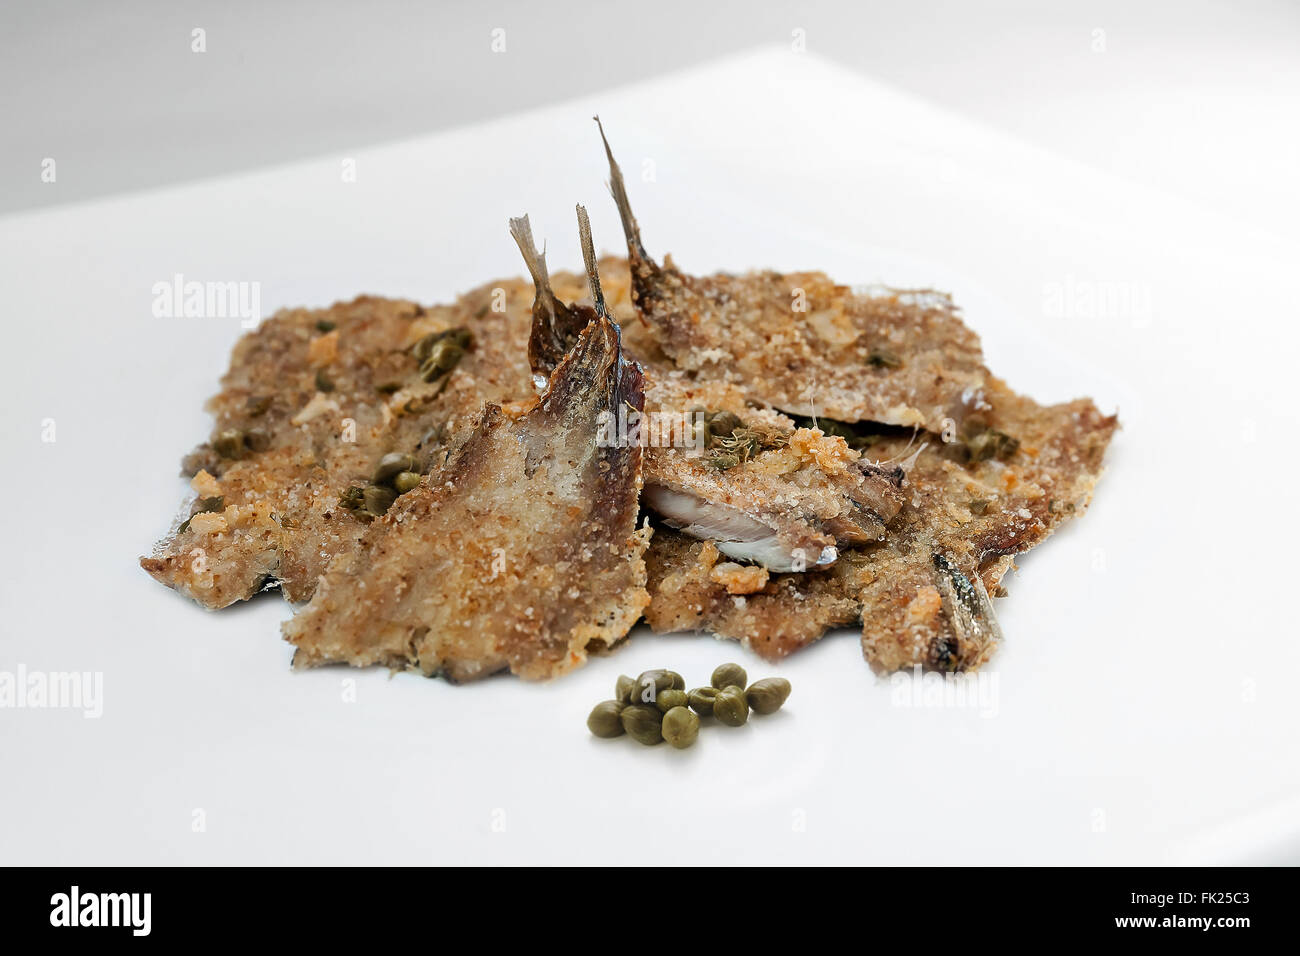 Anchovies baked with capers and breadcrumbs. Photographed in the studio, on the plate and a white background. - Stock Image